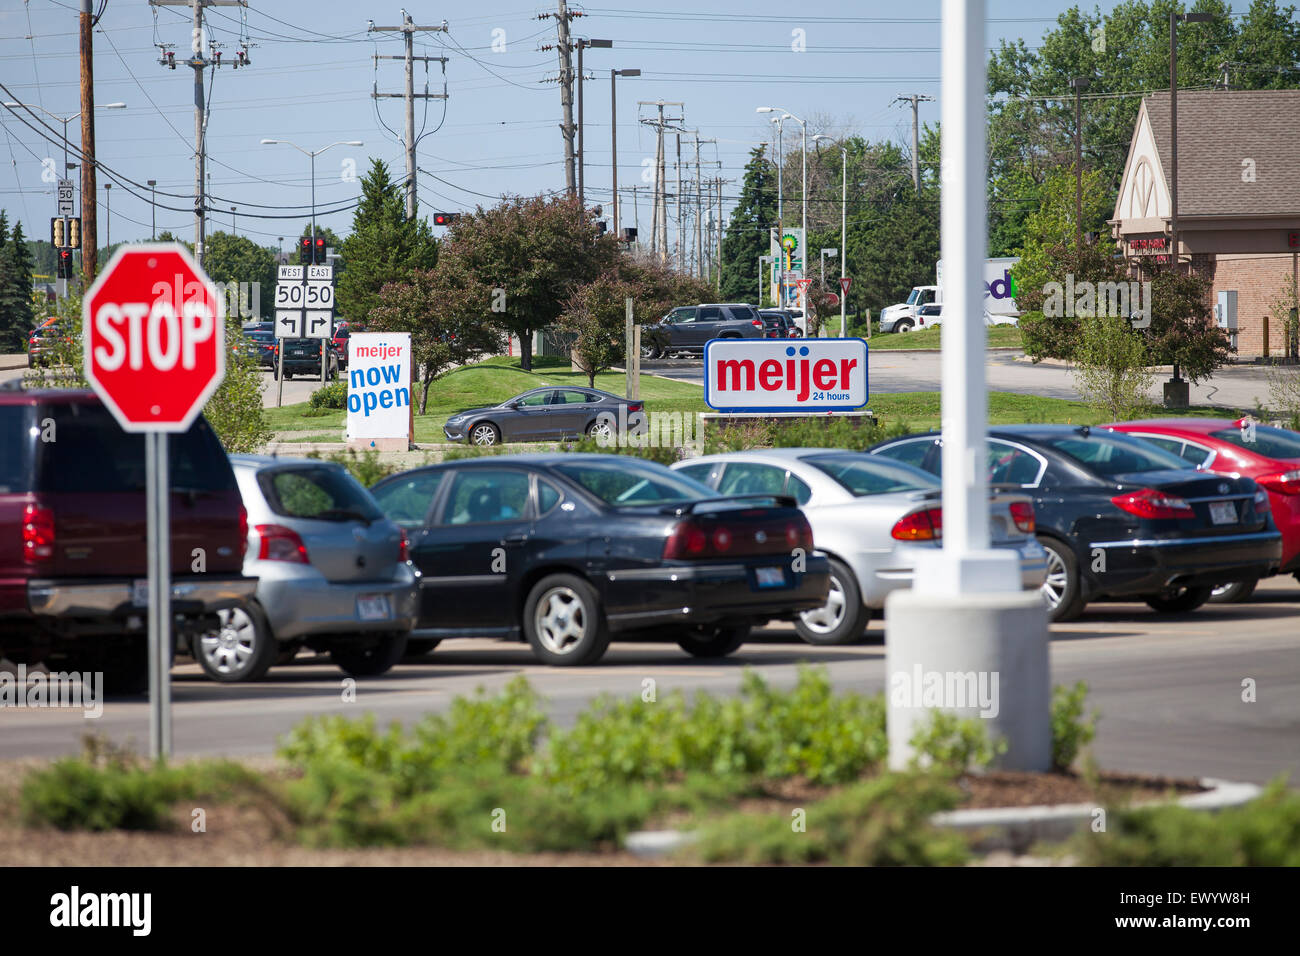 A Meijer supermarket grocery store chain store in Wisconsin. Meijer stores are family owned and operate in the Midwest. - Stock Image